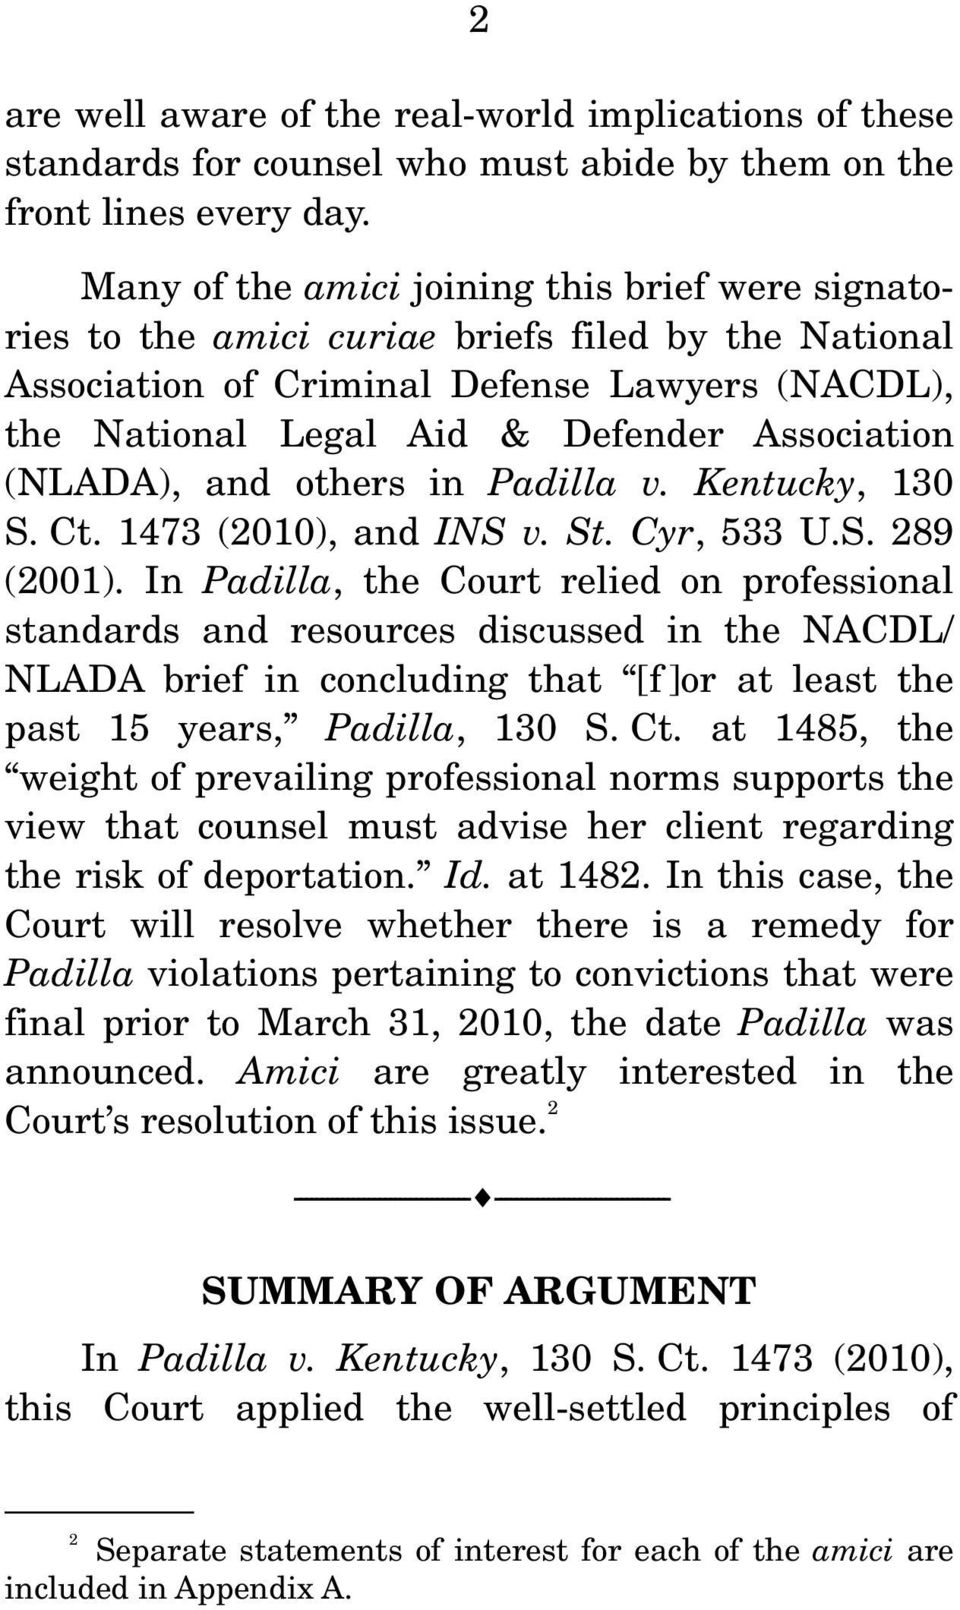 (NLADA), and others in Padilla v. Kentucky, 130 S. Ct. 1473 (2010), and INS v. St. Cyr, 533 U.S. 289 (2001).